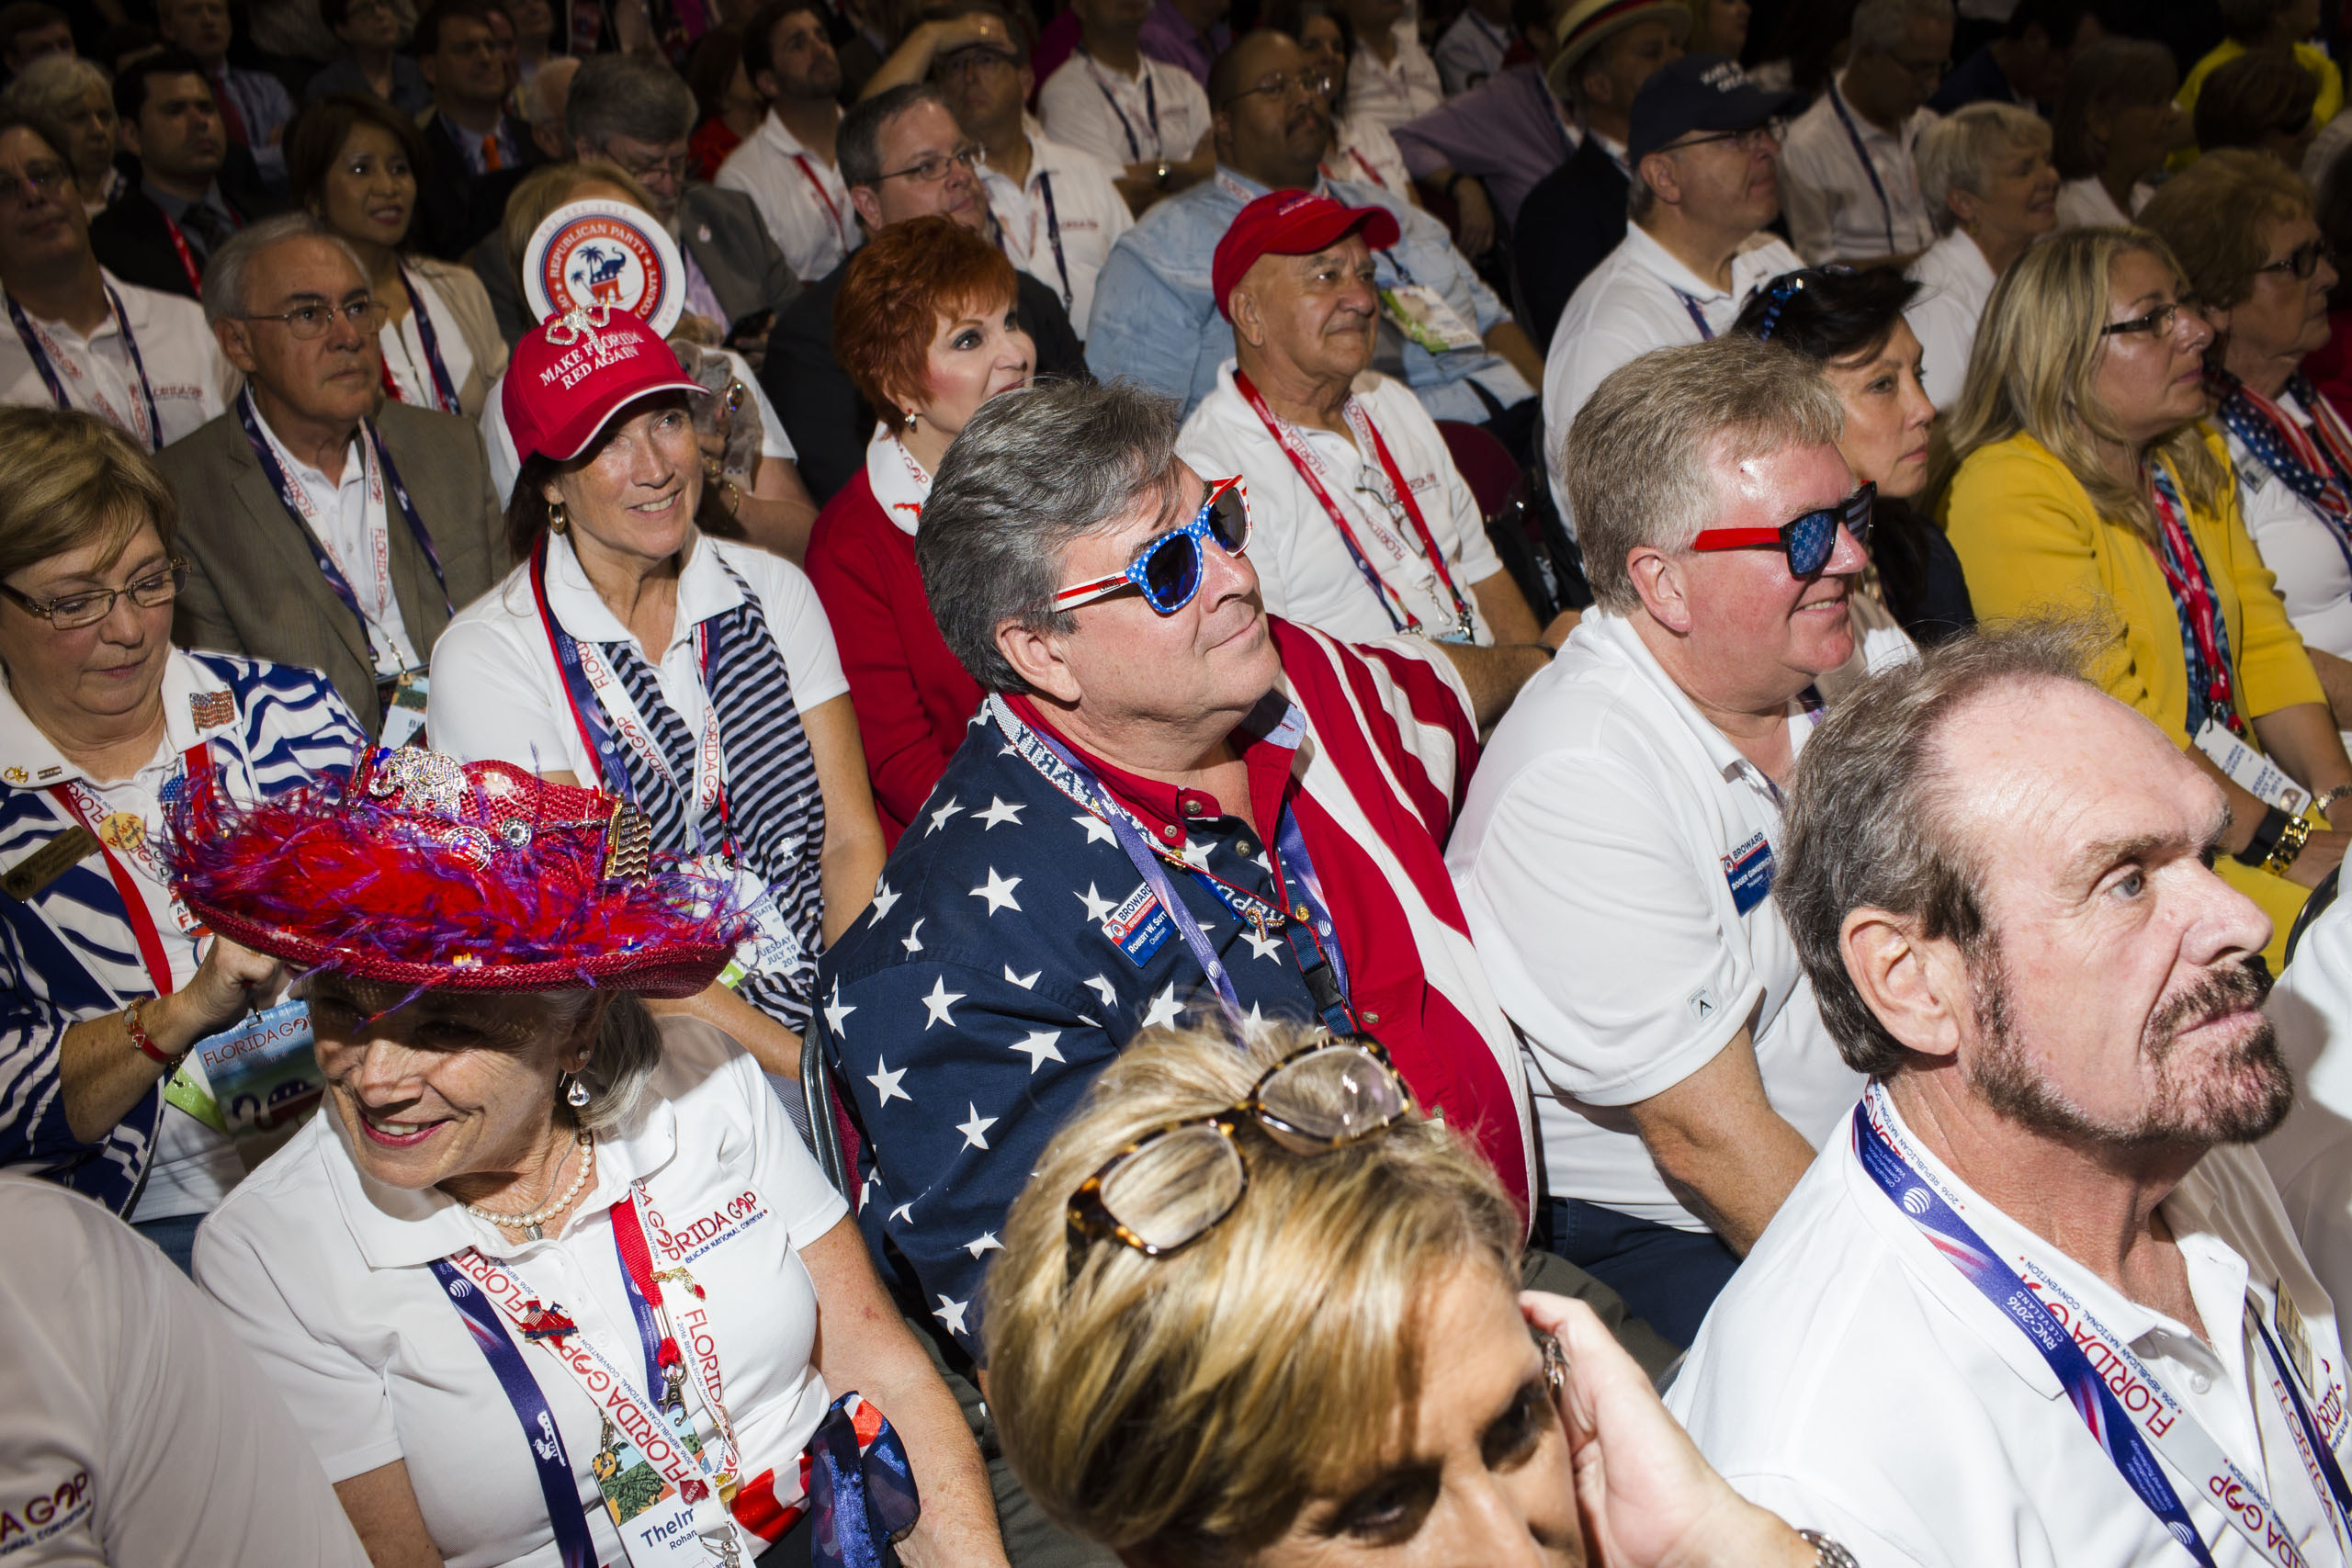 Florida delegates listen to speeches at the Republican National Convention, July 19, 2016 in Cleveland.